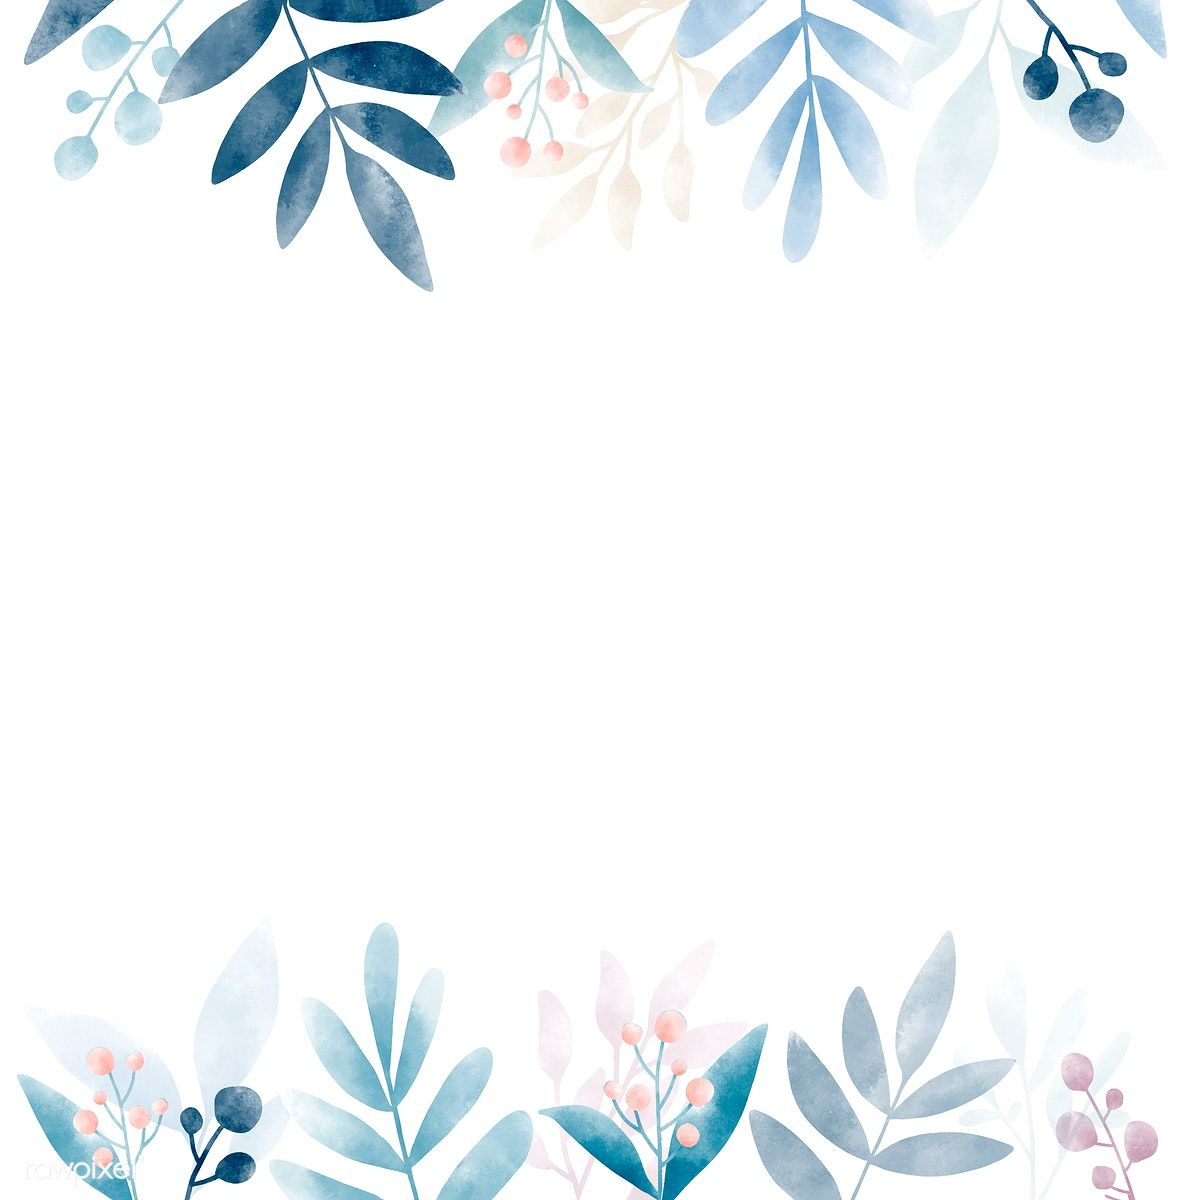 Download Premium Illustration Of Watercolor Leaves With Copy Space